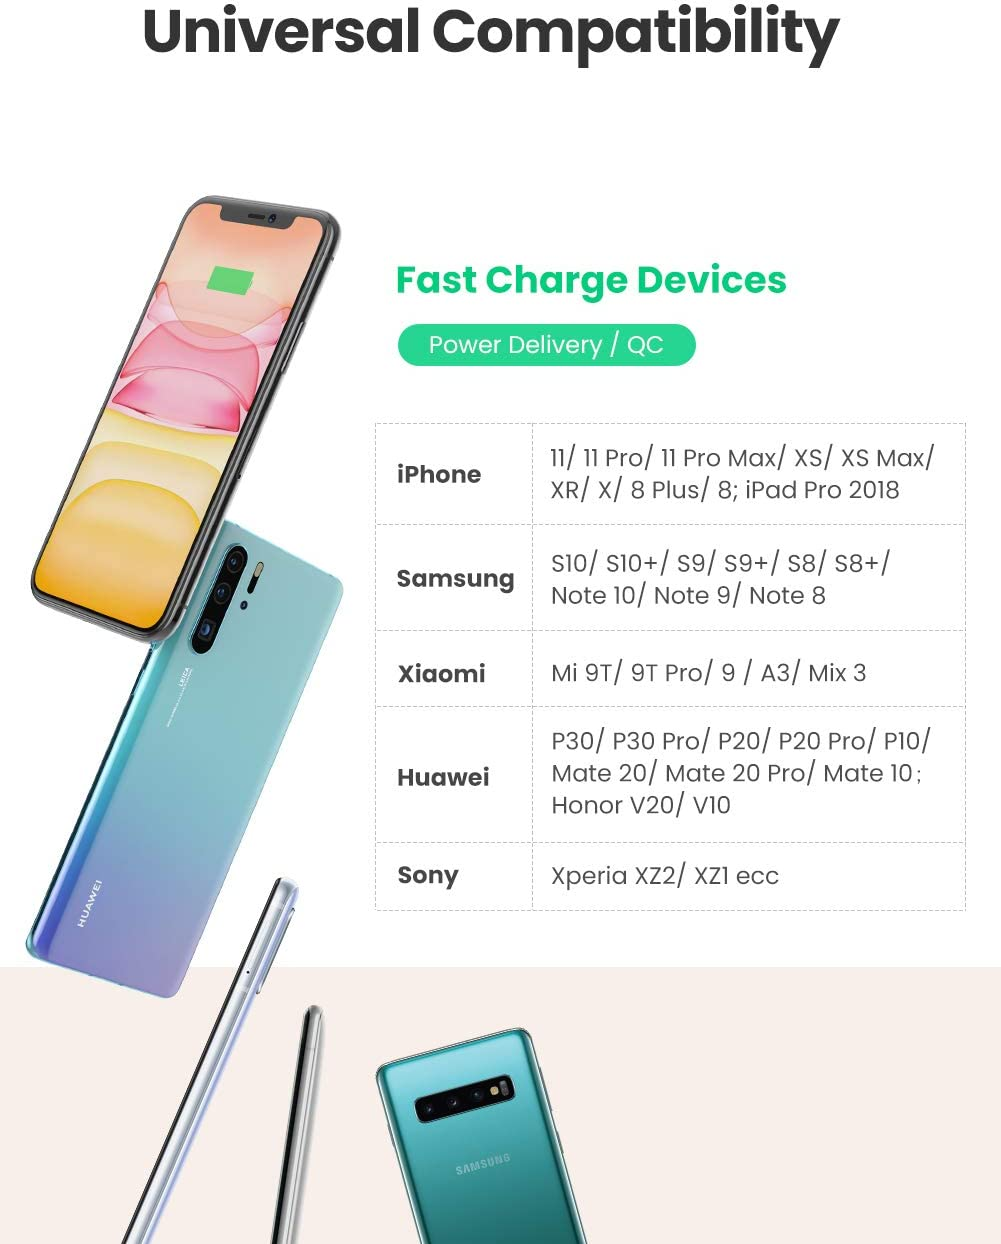 Tab S5e S4 S3 Huawei P9 P8 Lite Mate 8 Honor 9 Honor 8 Blanc iPad Air Pro iPhone UGREEN Quick Charge 3.0 Chargeur Secteur USB Rapide 18W pour Samsung S10 Plus S9 S8 S7 Edge Note 8 Note 9 A8